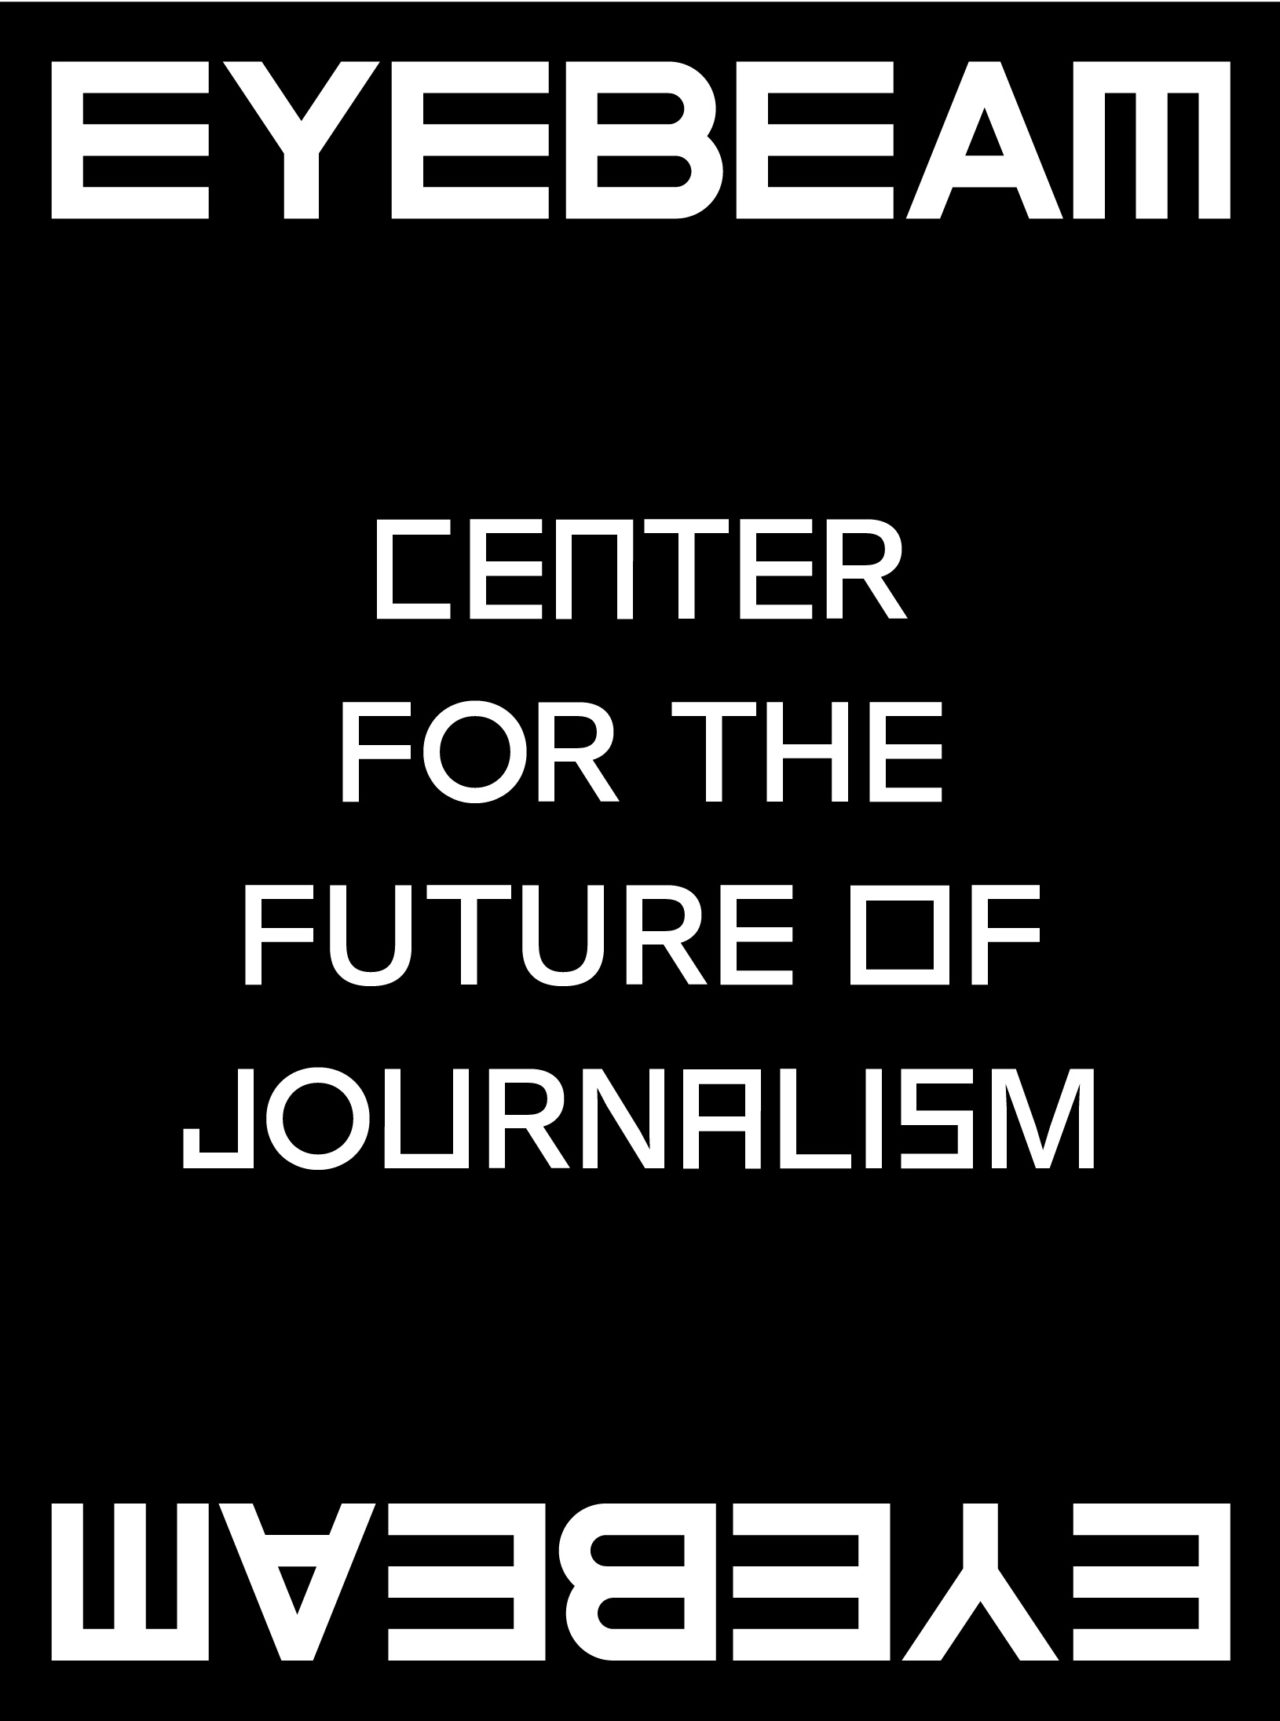 Eyebeam Center for the Future of Journalism